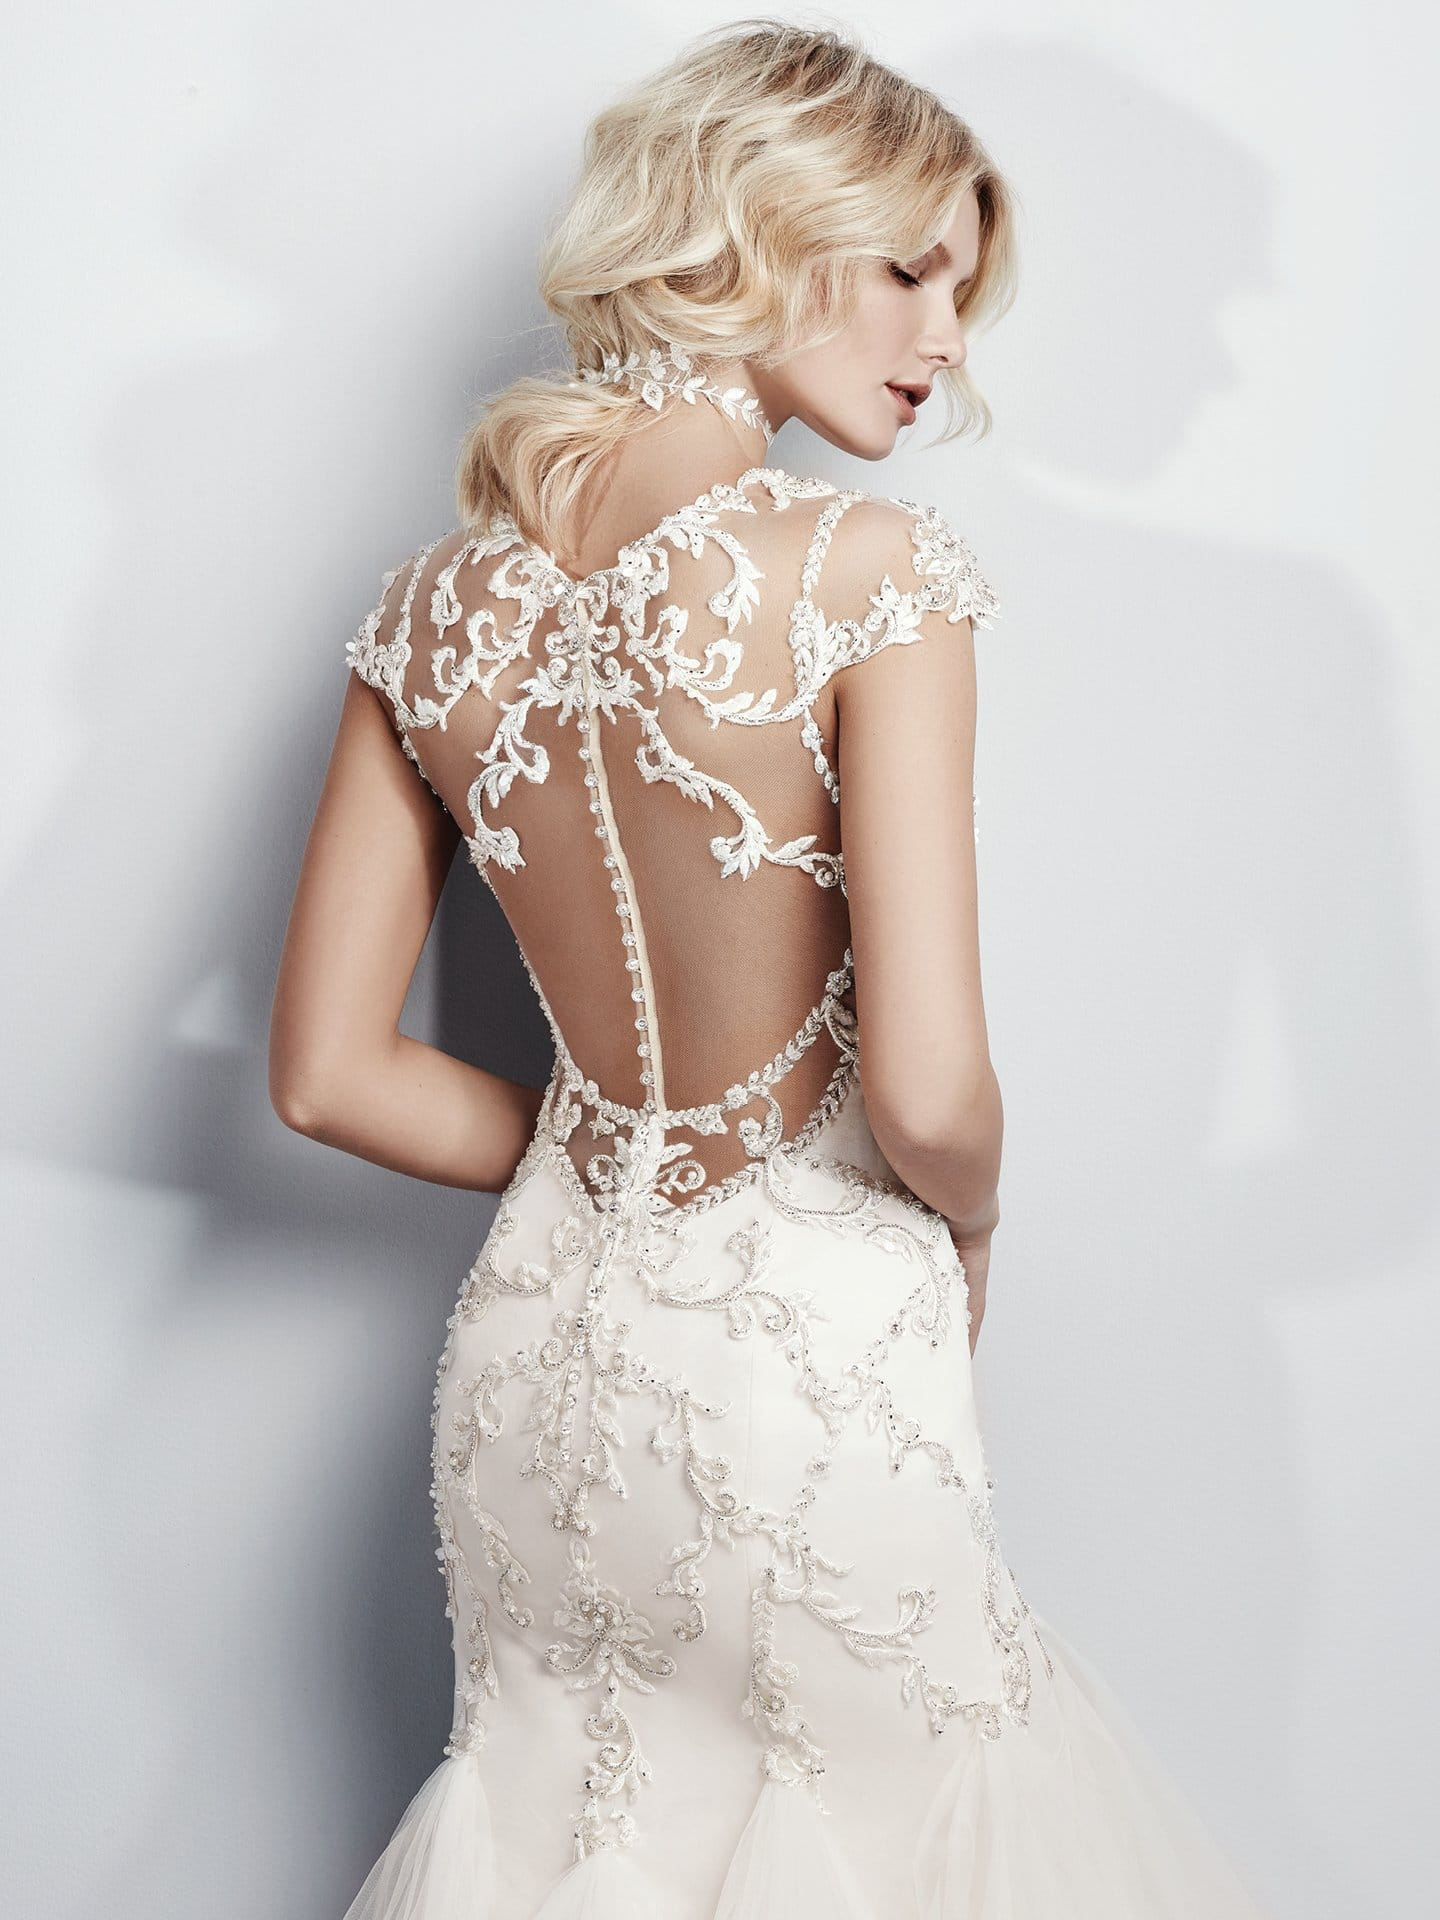 Beautiful statement-back wedding dresses from Maggie Sottero and Sottero and Midgley - This stunning mermaid wedding dress features an illusion sweetheart neckline, cap-sleeves, and open back, all trimmed in beaded lace appliqués and Swarovski crystals. Grayson by Sottero and Midgley.